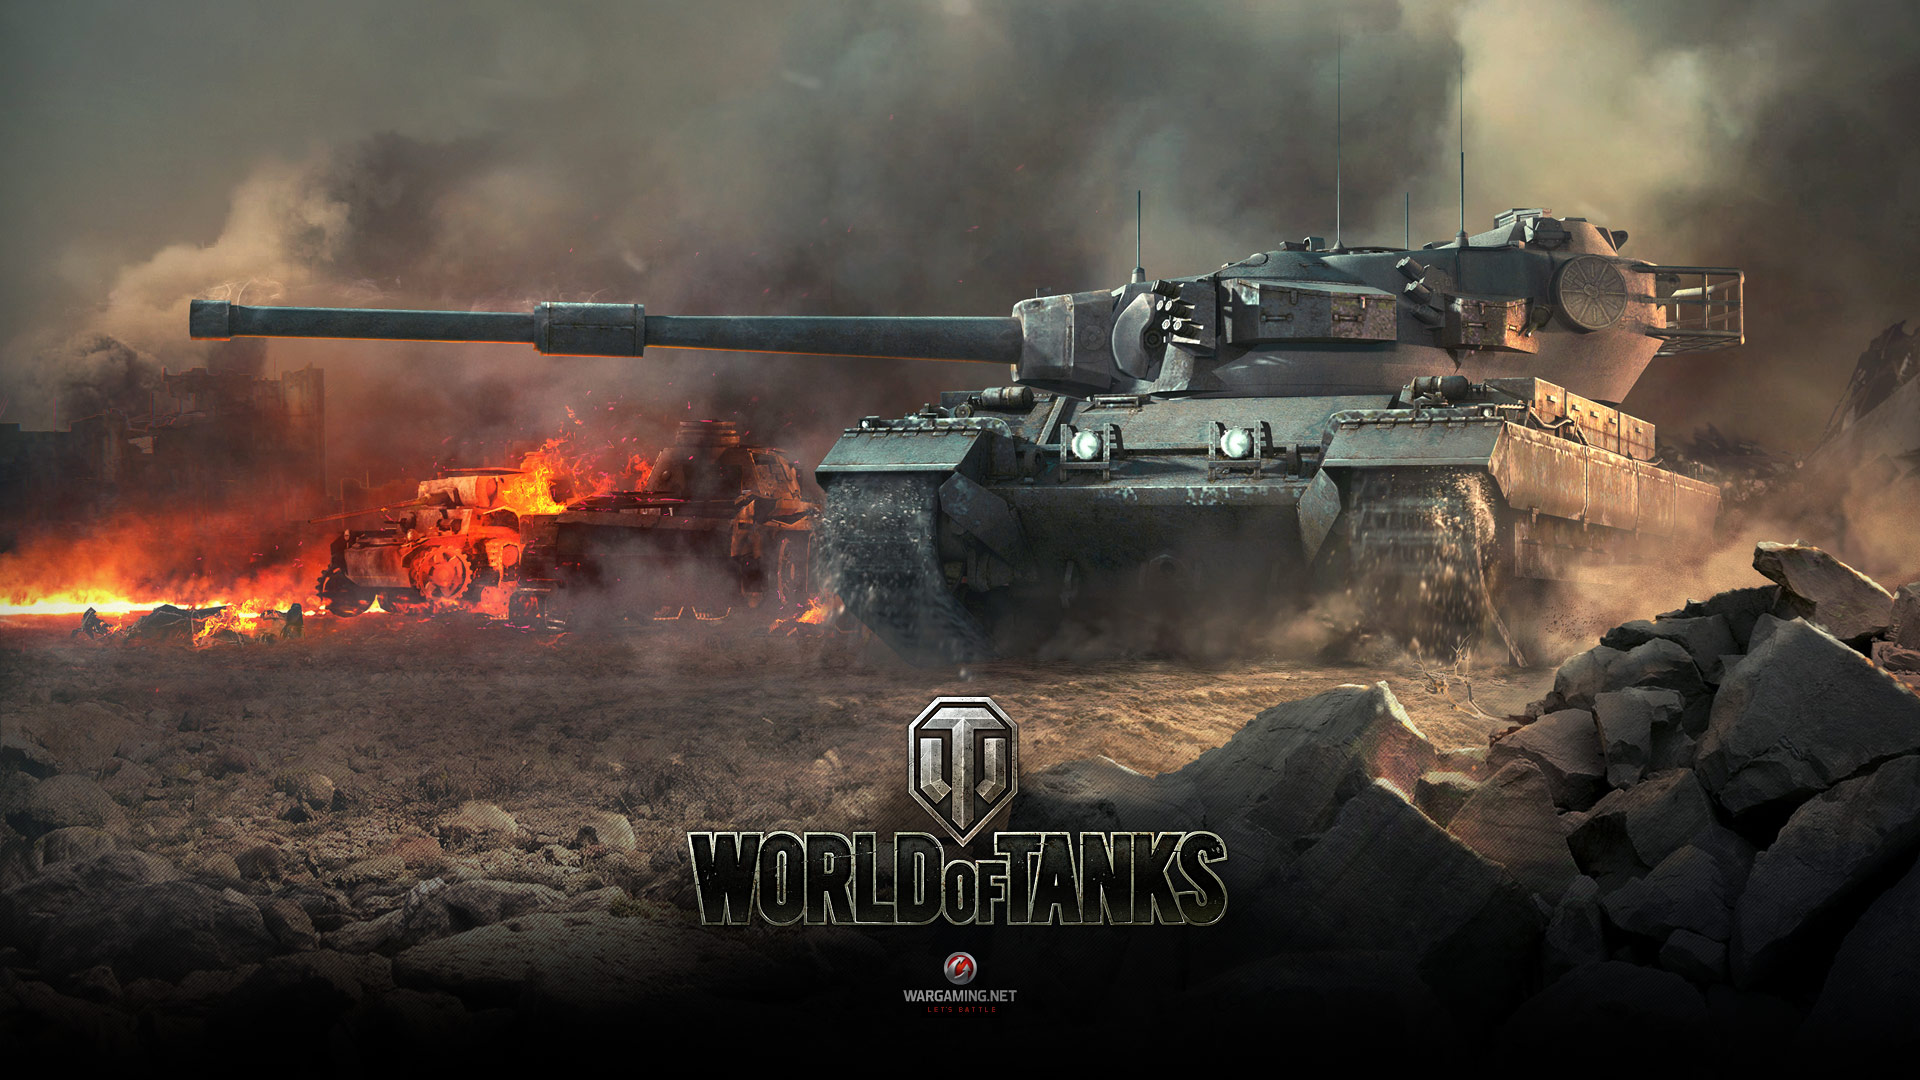 World of Tanks Rolls Out onto Xbox One